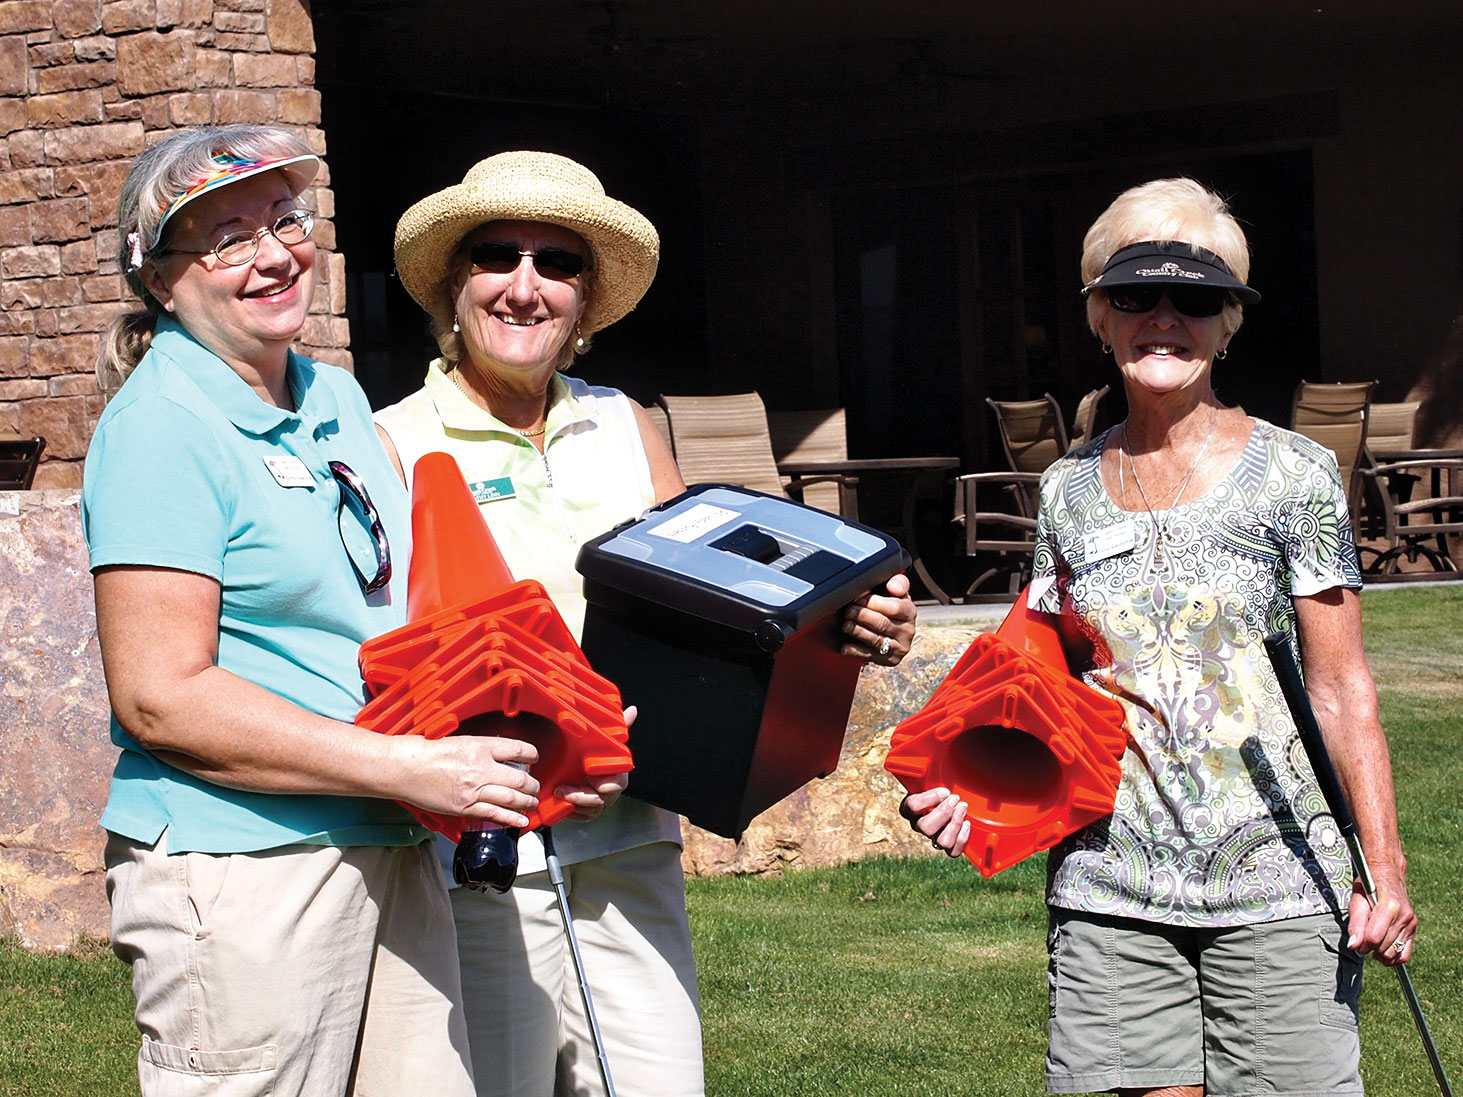 Left to right: The set-up team Kathy Hamilton, Kathy Linn and Terry Ramsbottom gather the supplies needed to set up the course to make it challenging and safe; photo by Sylvia Butler.